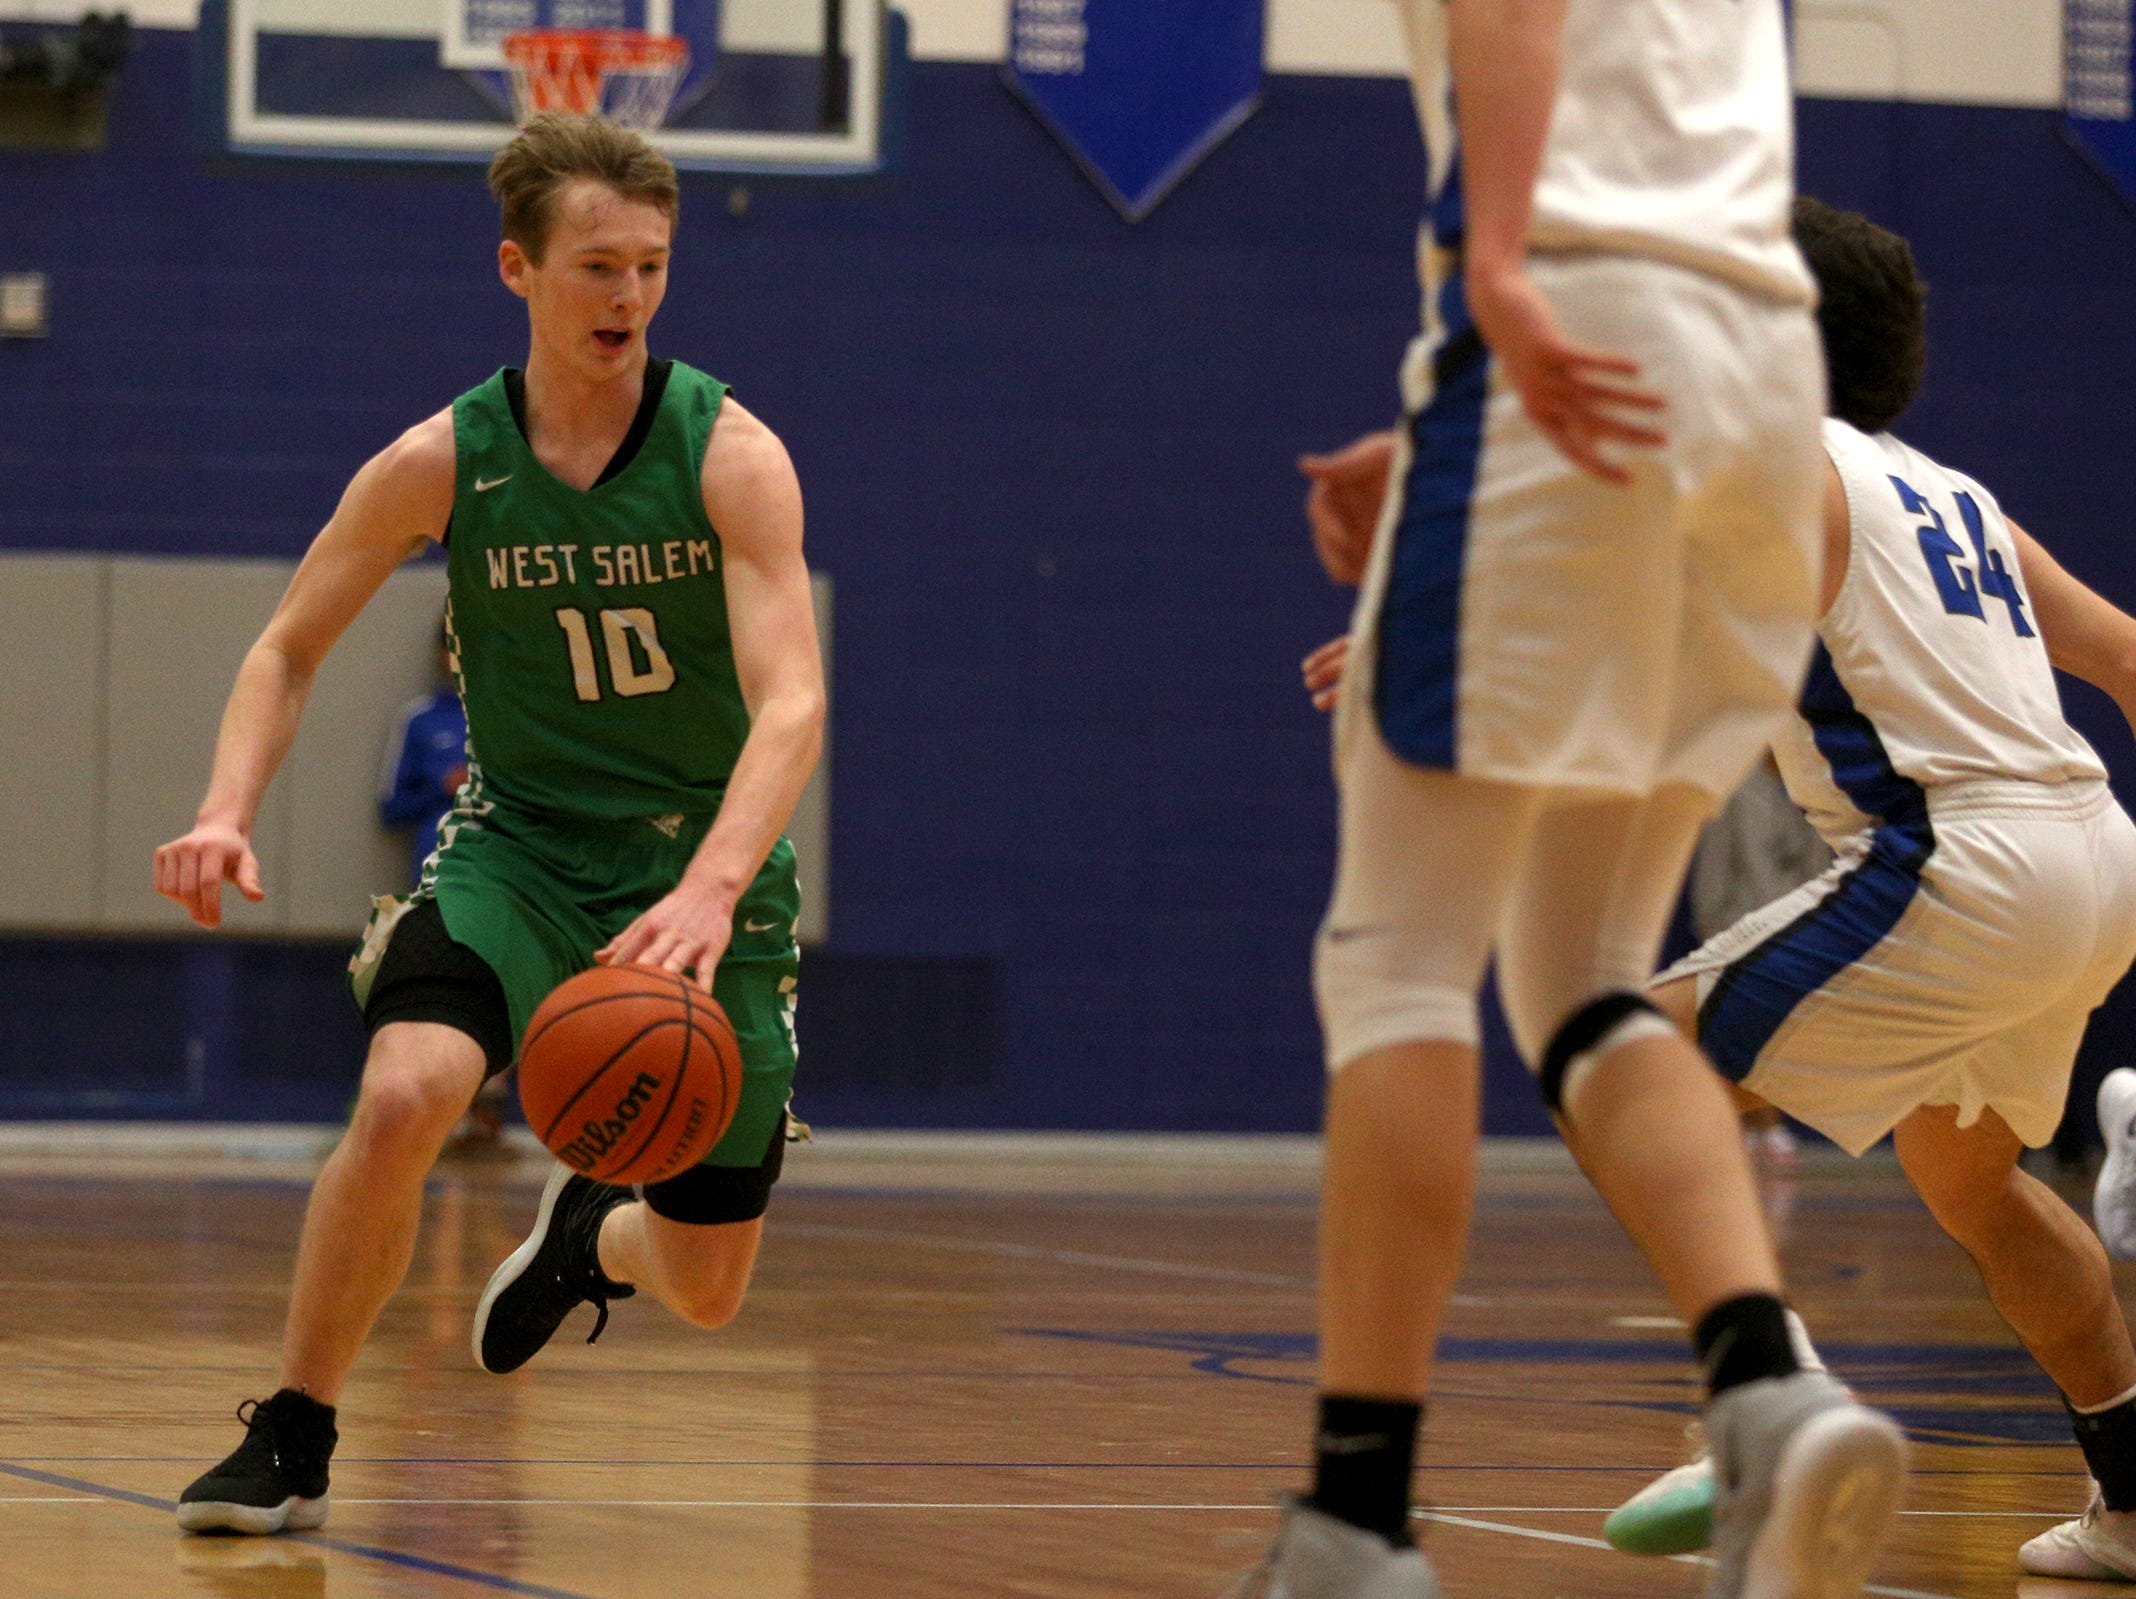 West Salem's Justin Scoggin (10) dribbles during the McNary boys basketball vs. West Salem game at McNary High School in Keizer on Wednesday, Feb. 6, 2019.